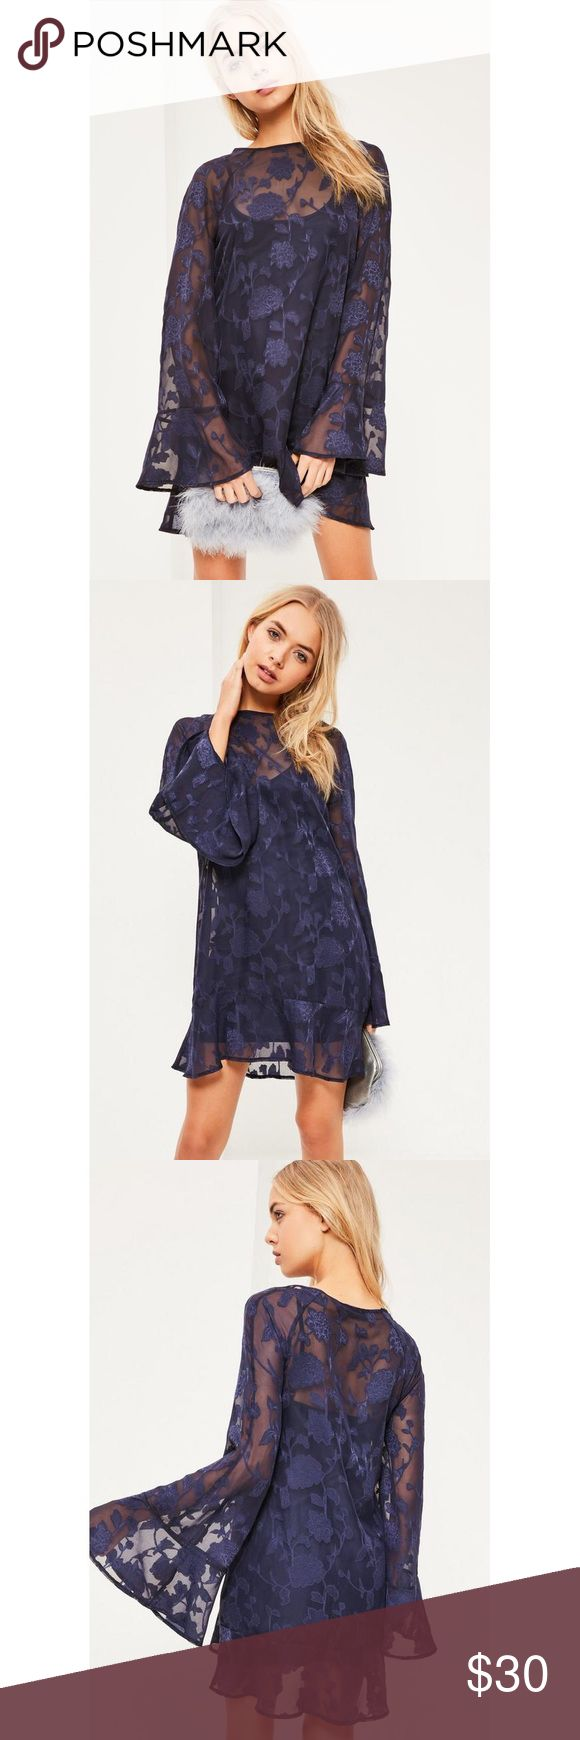 """Missguided Blue Jacquard Flute Sleeve Swing Dress be a new season bohemian dream in this swing dress - featuring a blue floral jacquard print, flute sleeves and a subtle frill hem.   regular fit - black cami dress underlay   100% polyester   approx length: 82cm/32"""" (based on a uk size 8 sample)   BRAND NEW WITH TAGS, SOLD OUT ONLINE Missguided Dresses Long Sleeve"""